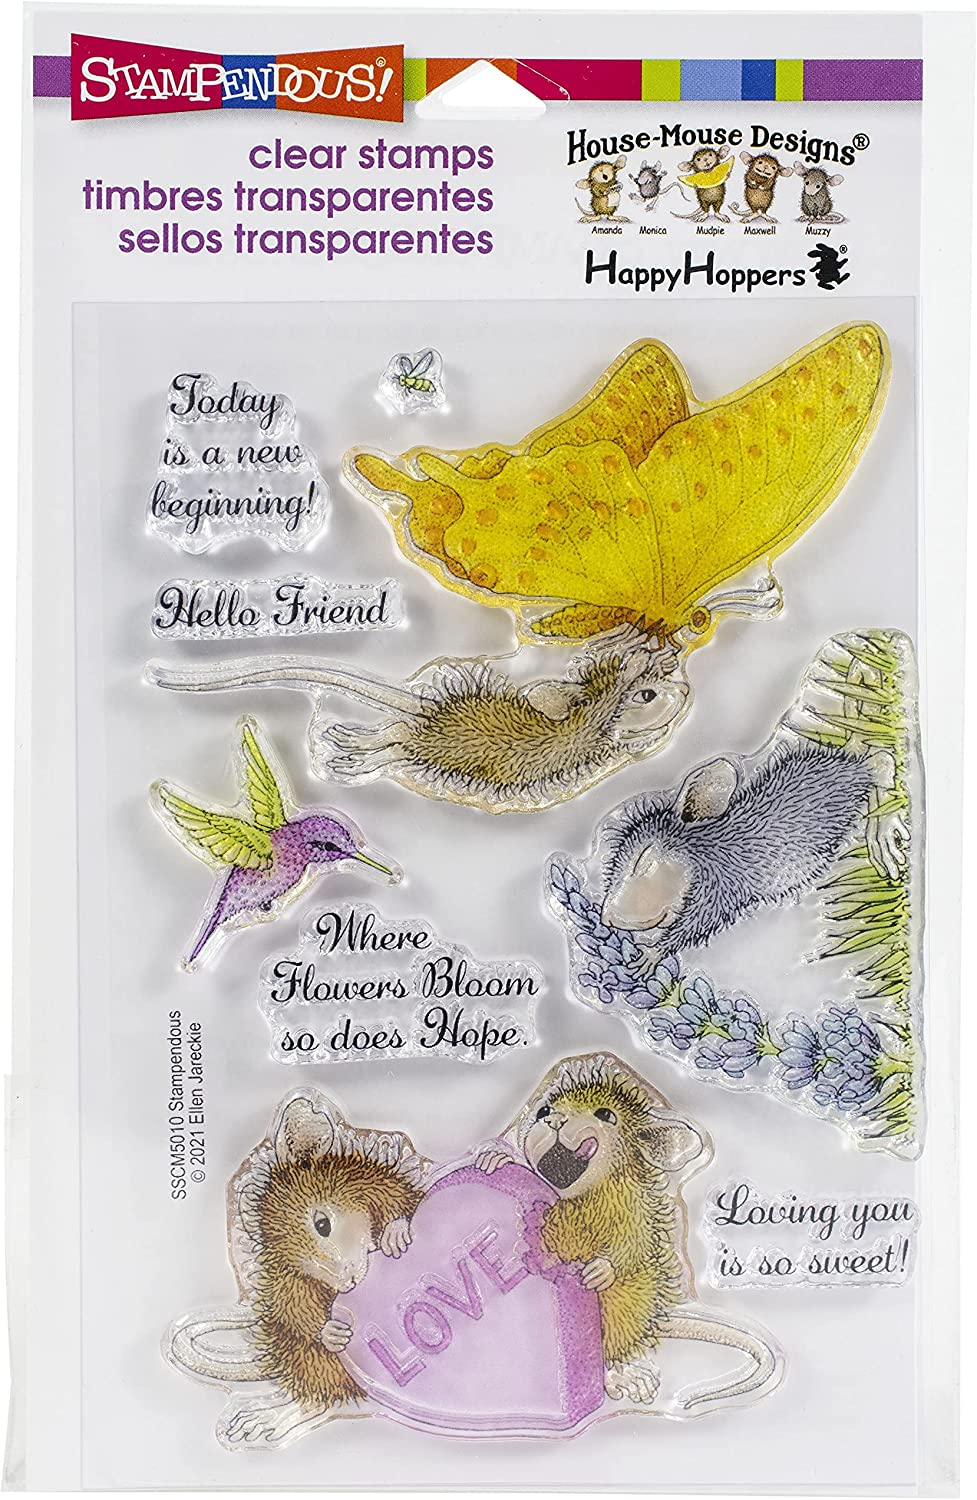 Stampendous Clear STMPDS HSE MSE BEGINN New Gorgeous Award-winning store